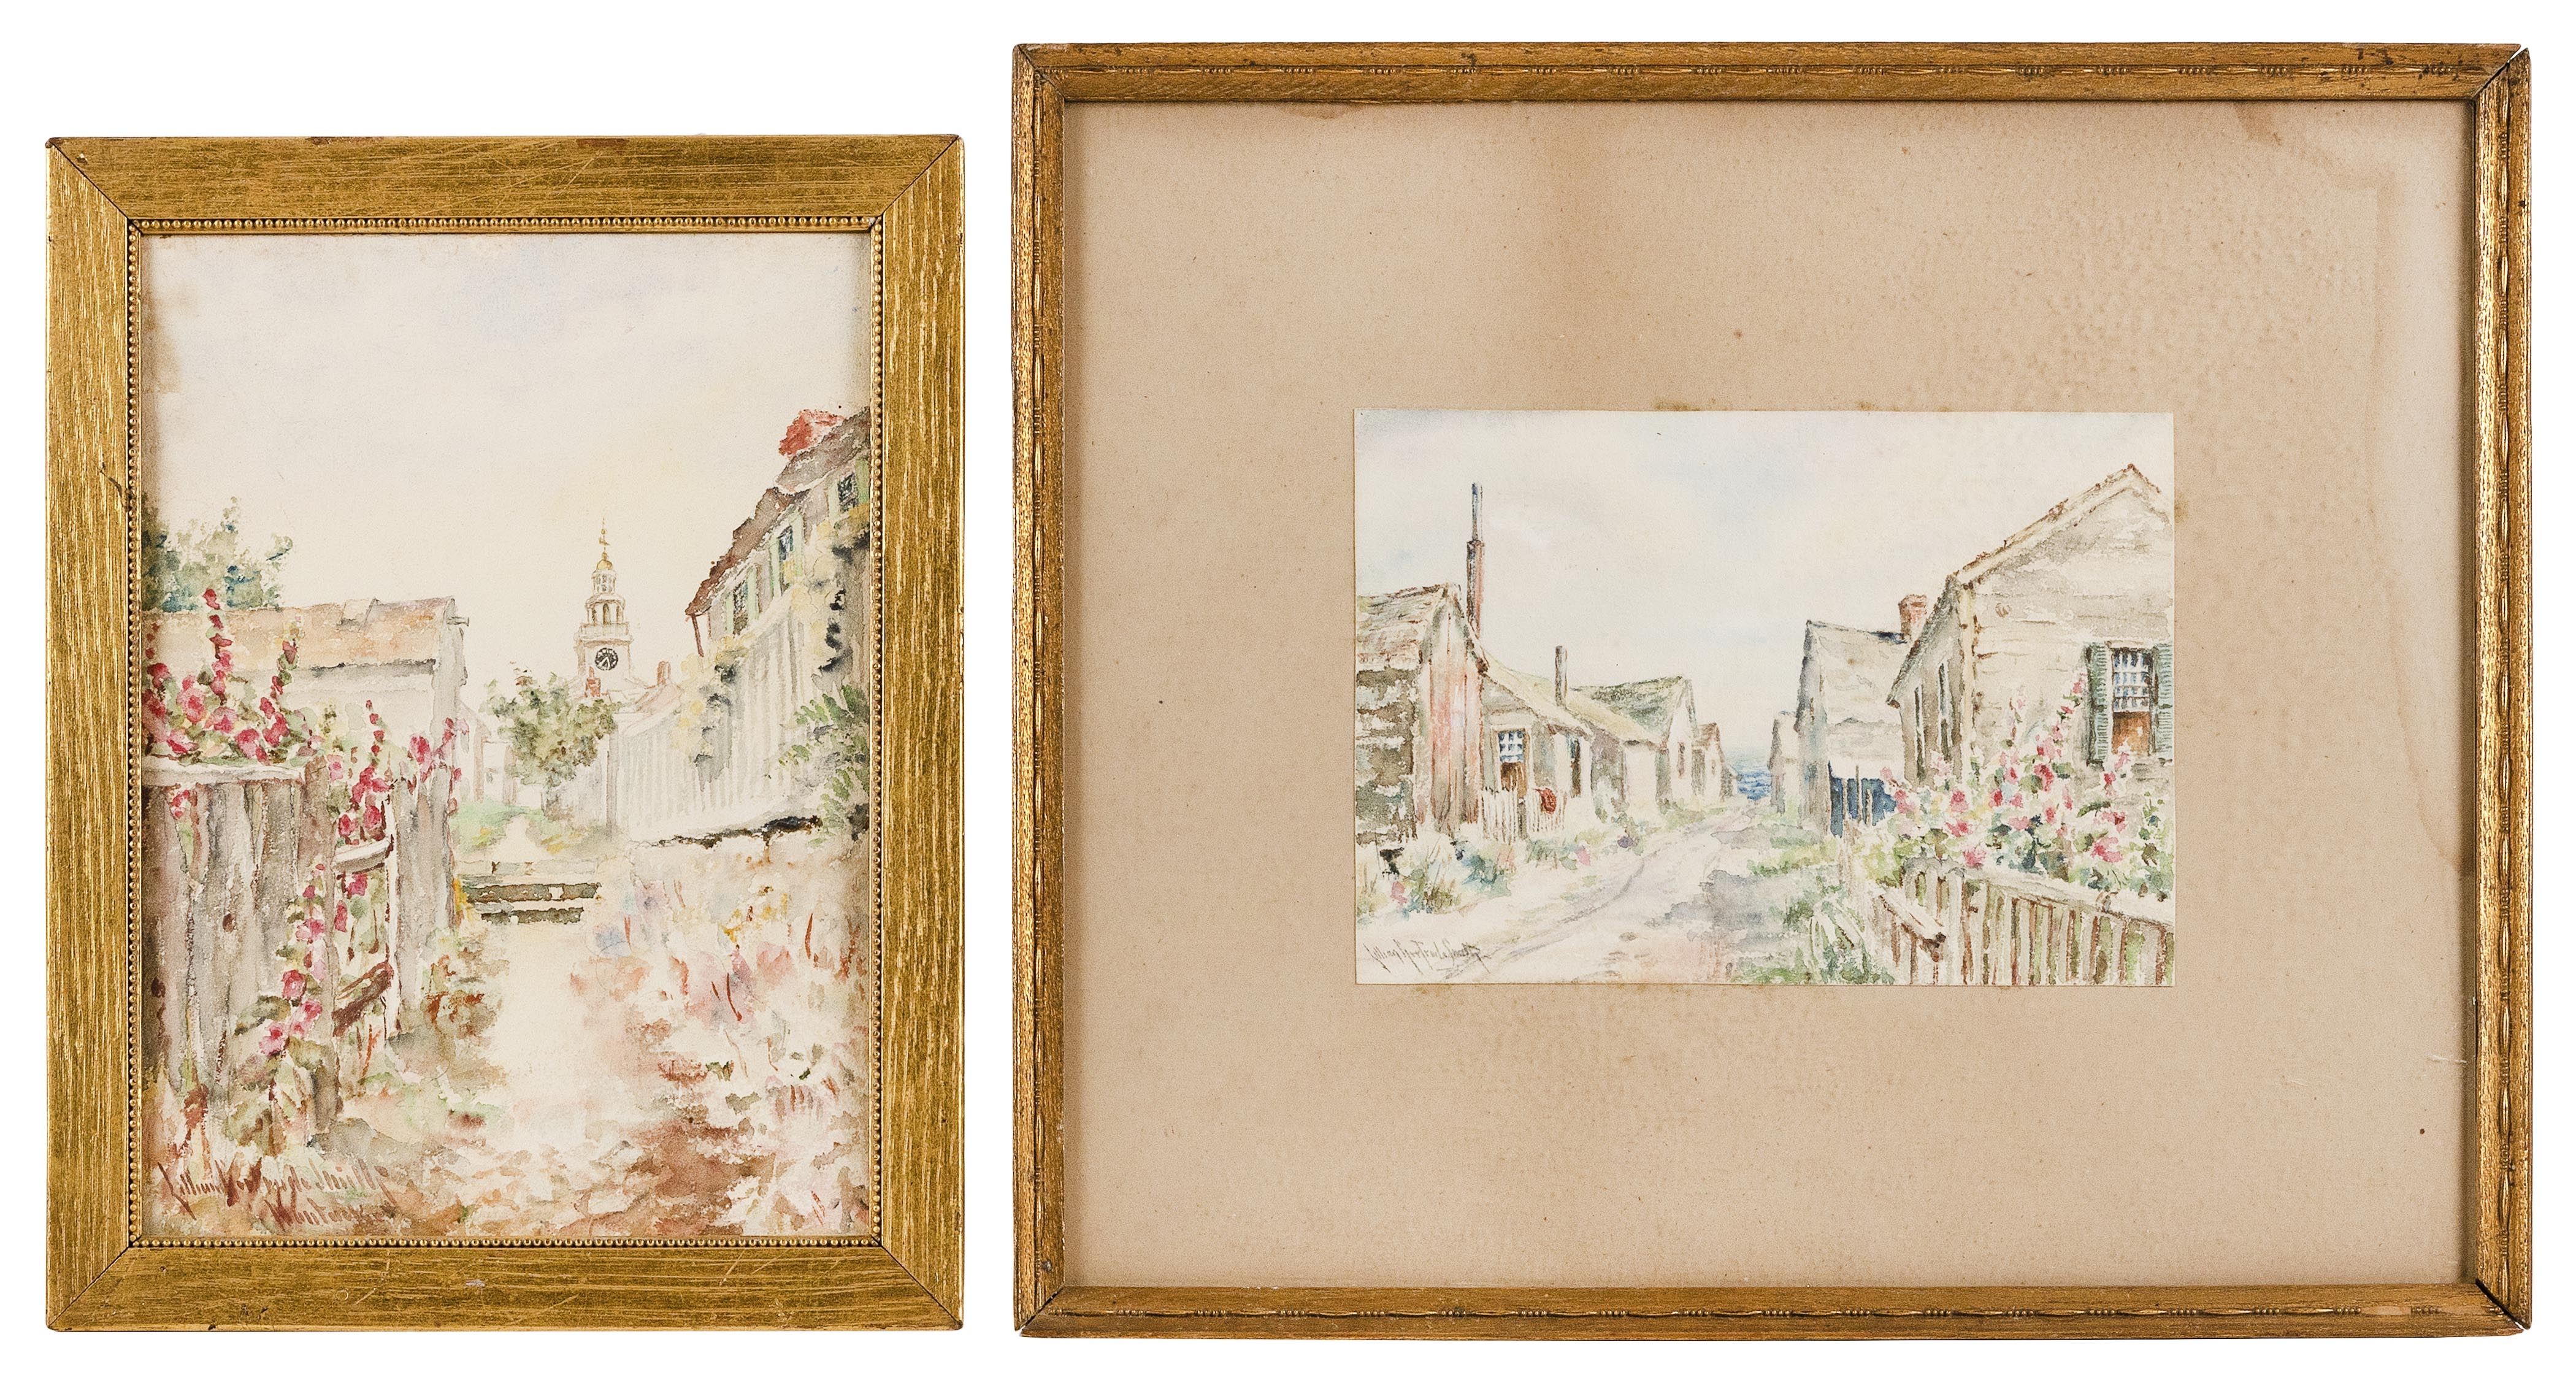 """LILLIAN GERTRUDE SMITH (Massachusetts, 19th / 20th Century), Two Nantucket works., Watercolors on paper, 10"""" x 8"""" x 6"""" x 8.75"""". Framed 12.5"""" x 9.5"""" and 14"""" x 17""""."""